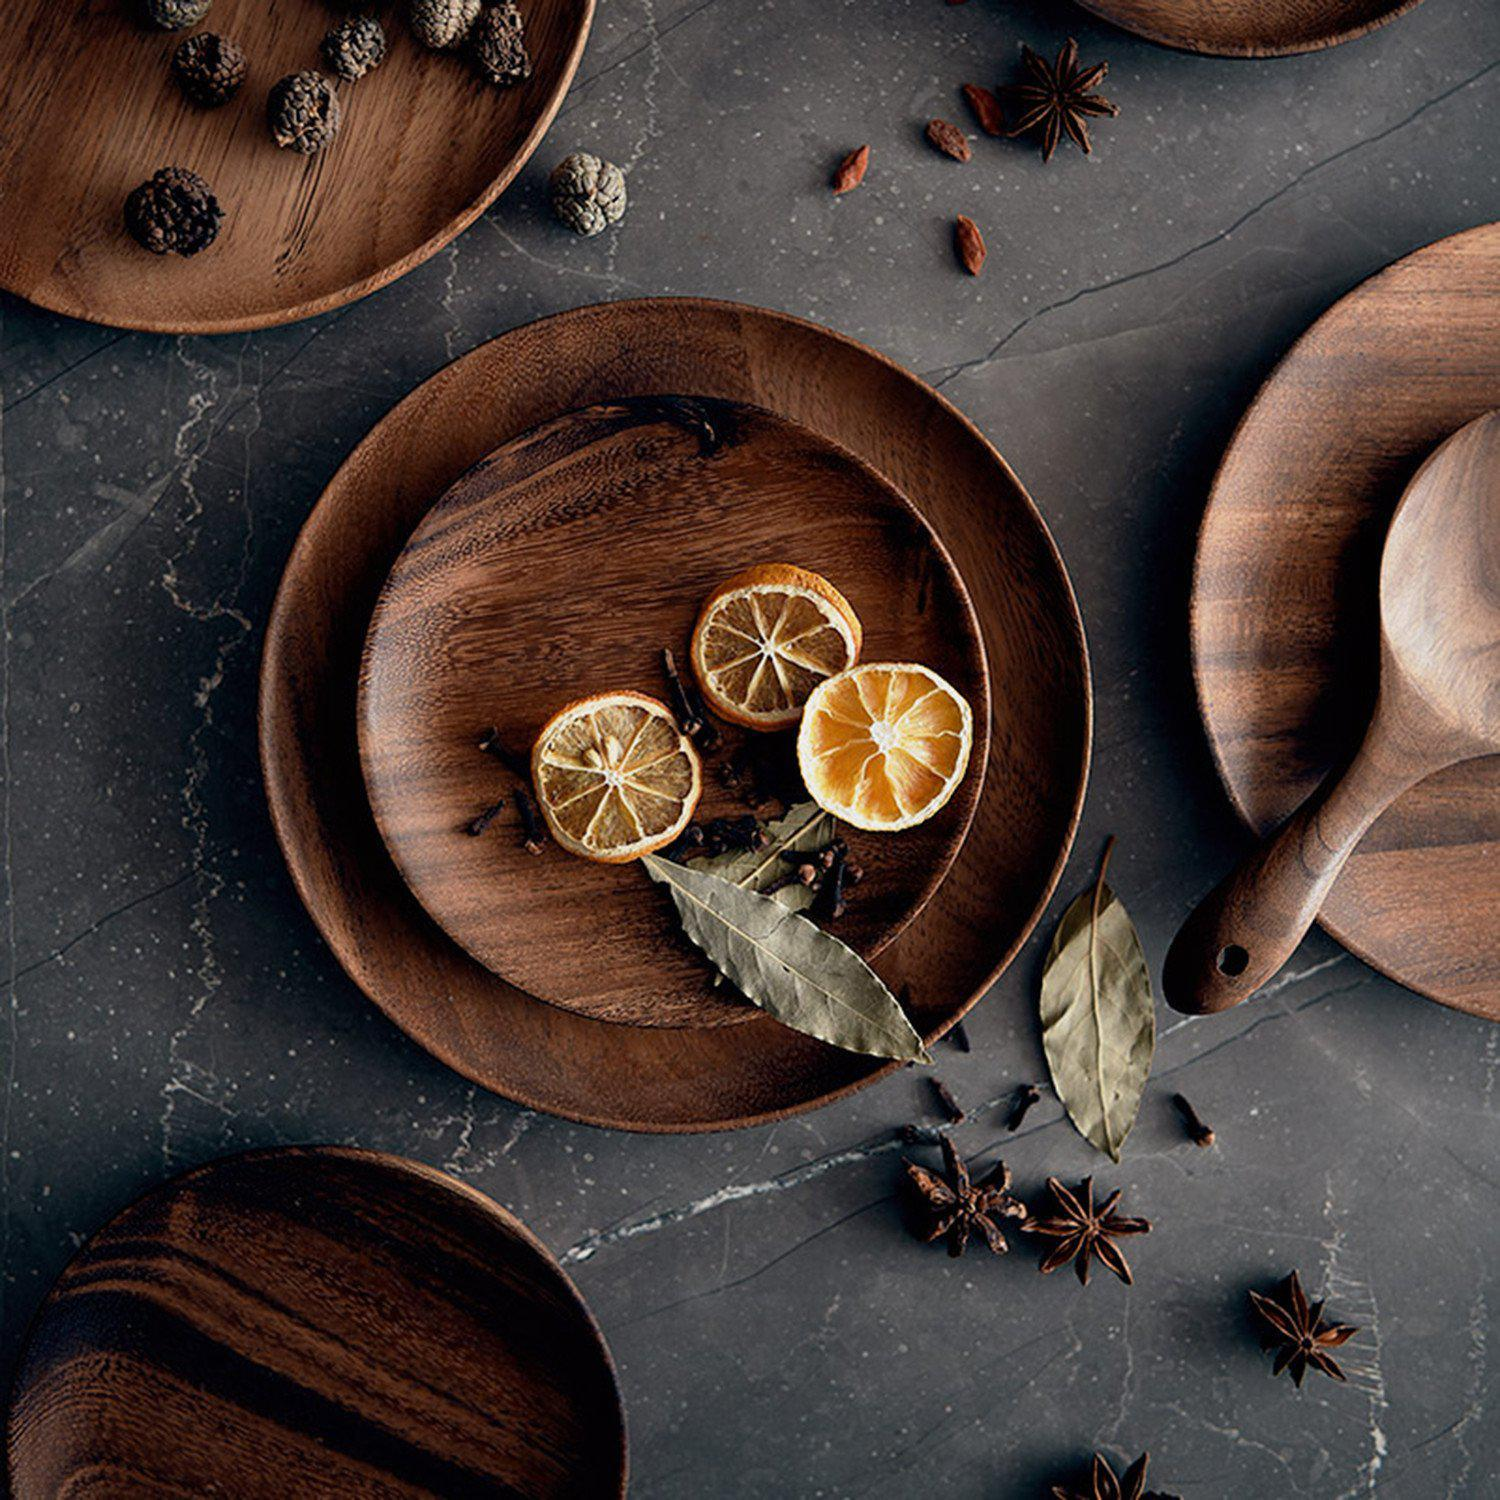 Scandinavian Natural-Wooden Serving Trays-Kitchen-Home Decor Products-Estilo Living